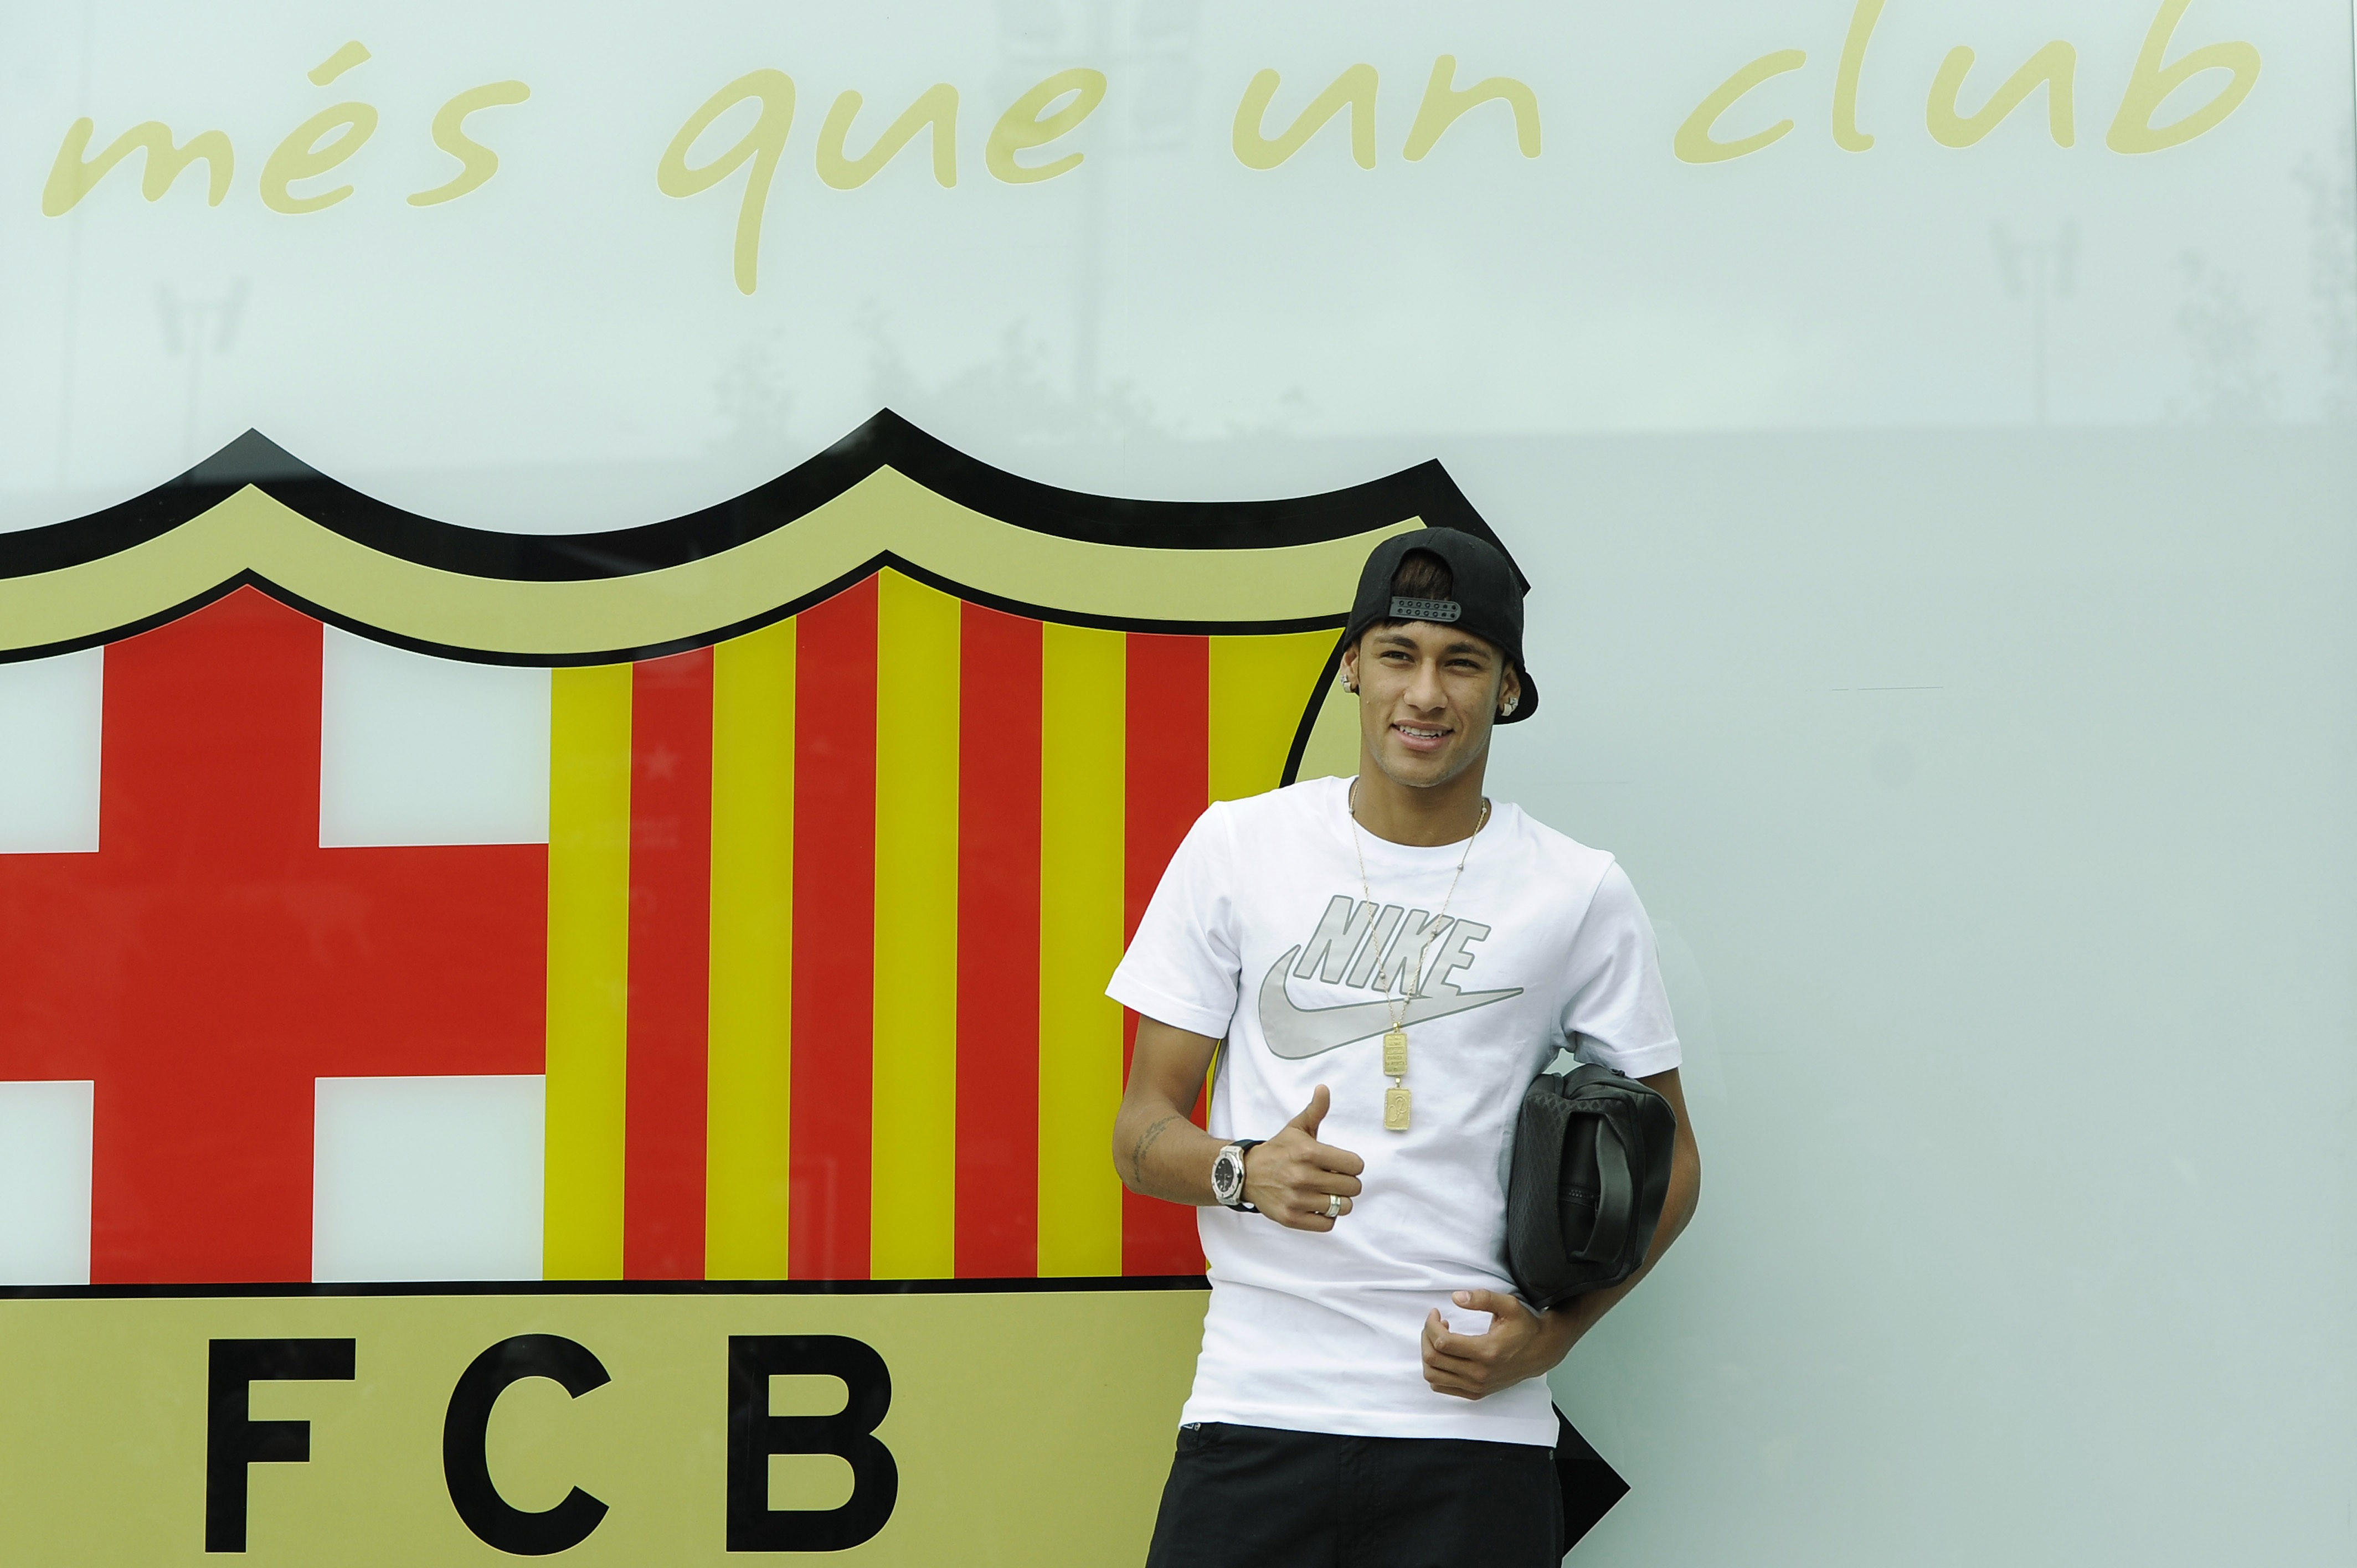 Neymar-Is-Unveiled-At-Camp-Nou-As-New-Barcelona-Signing-1562938864.jpg